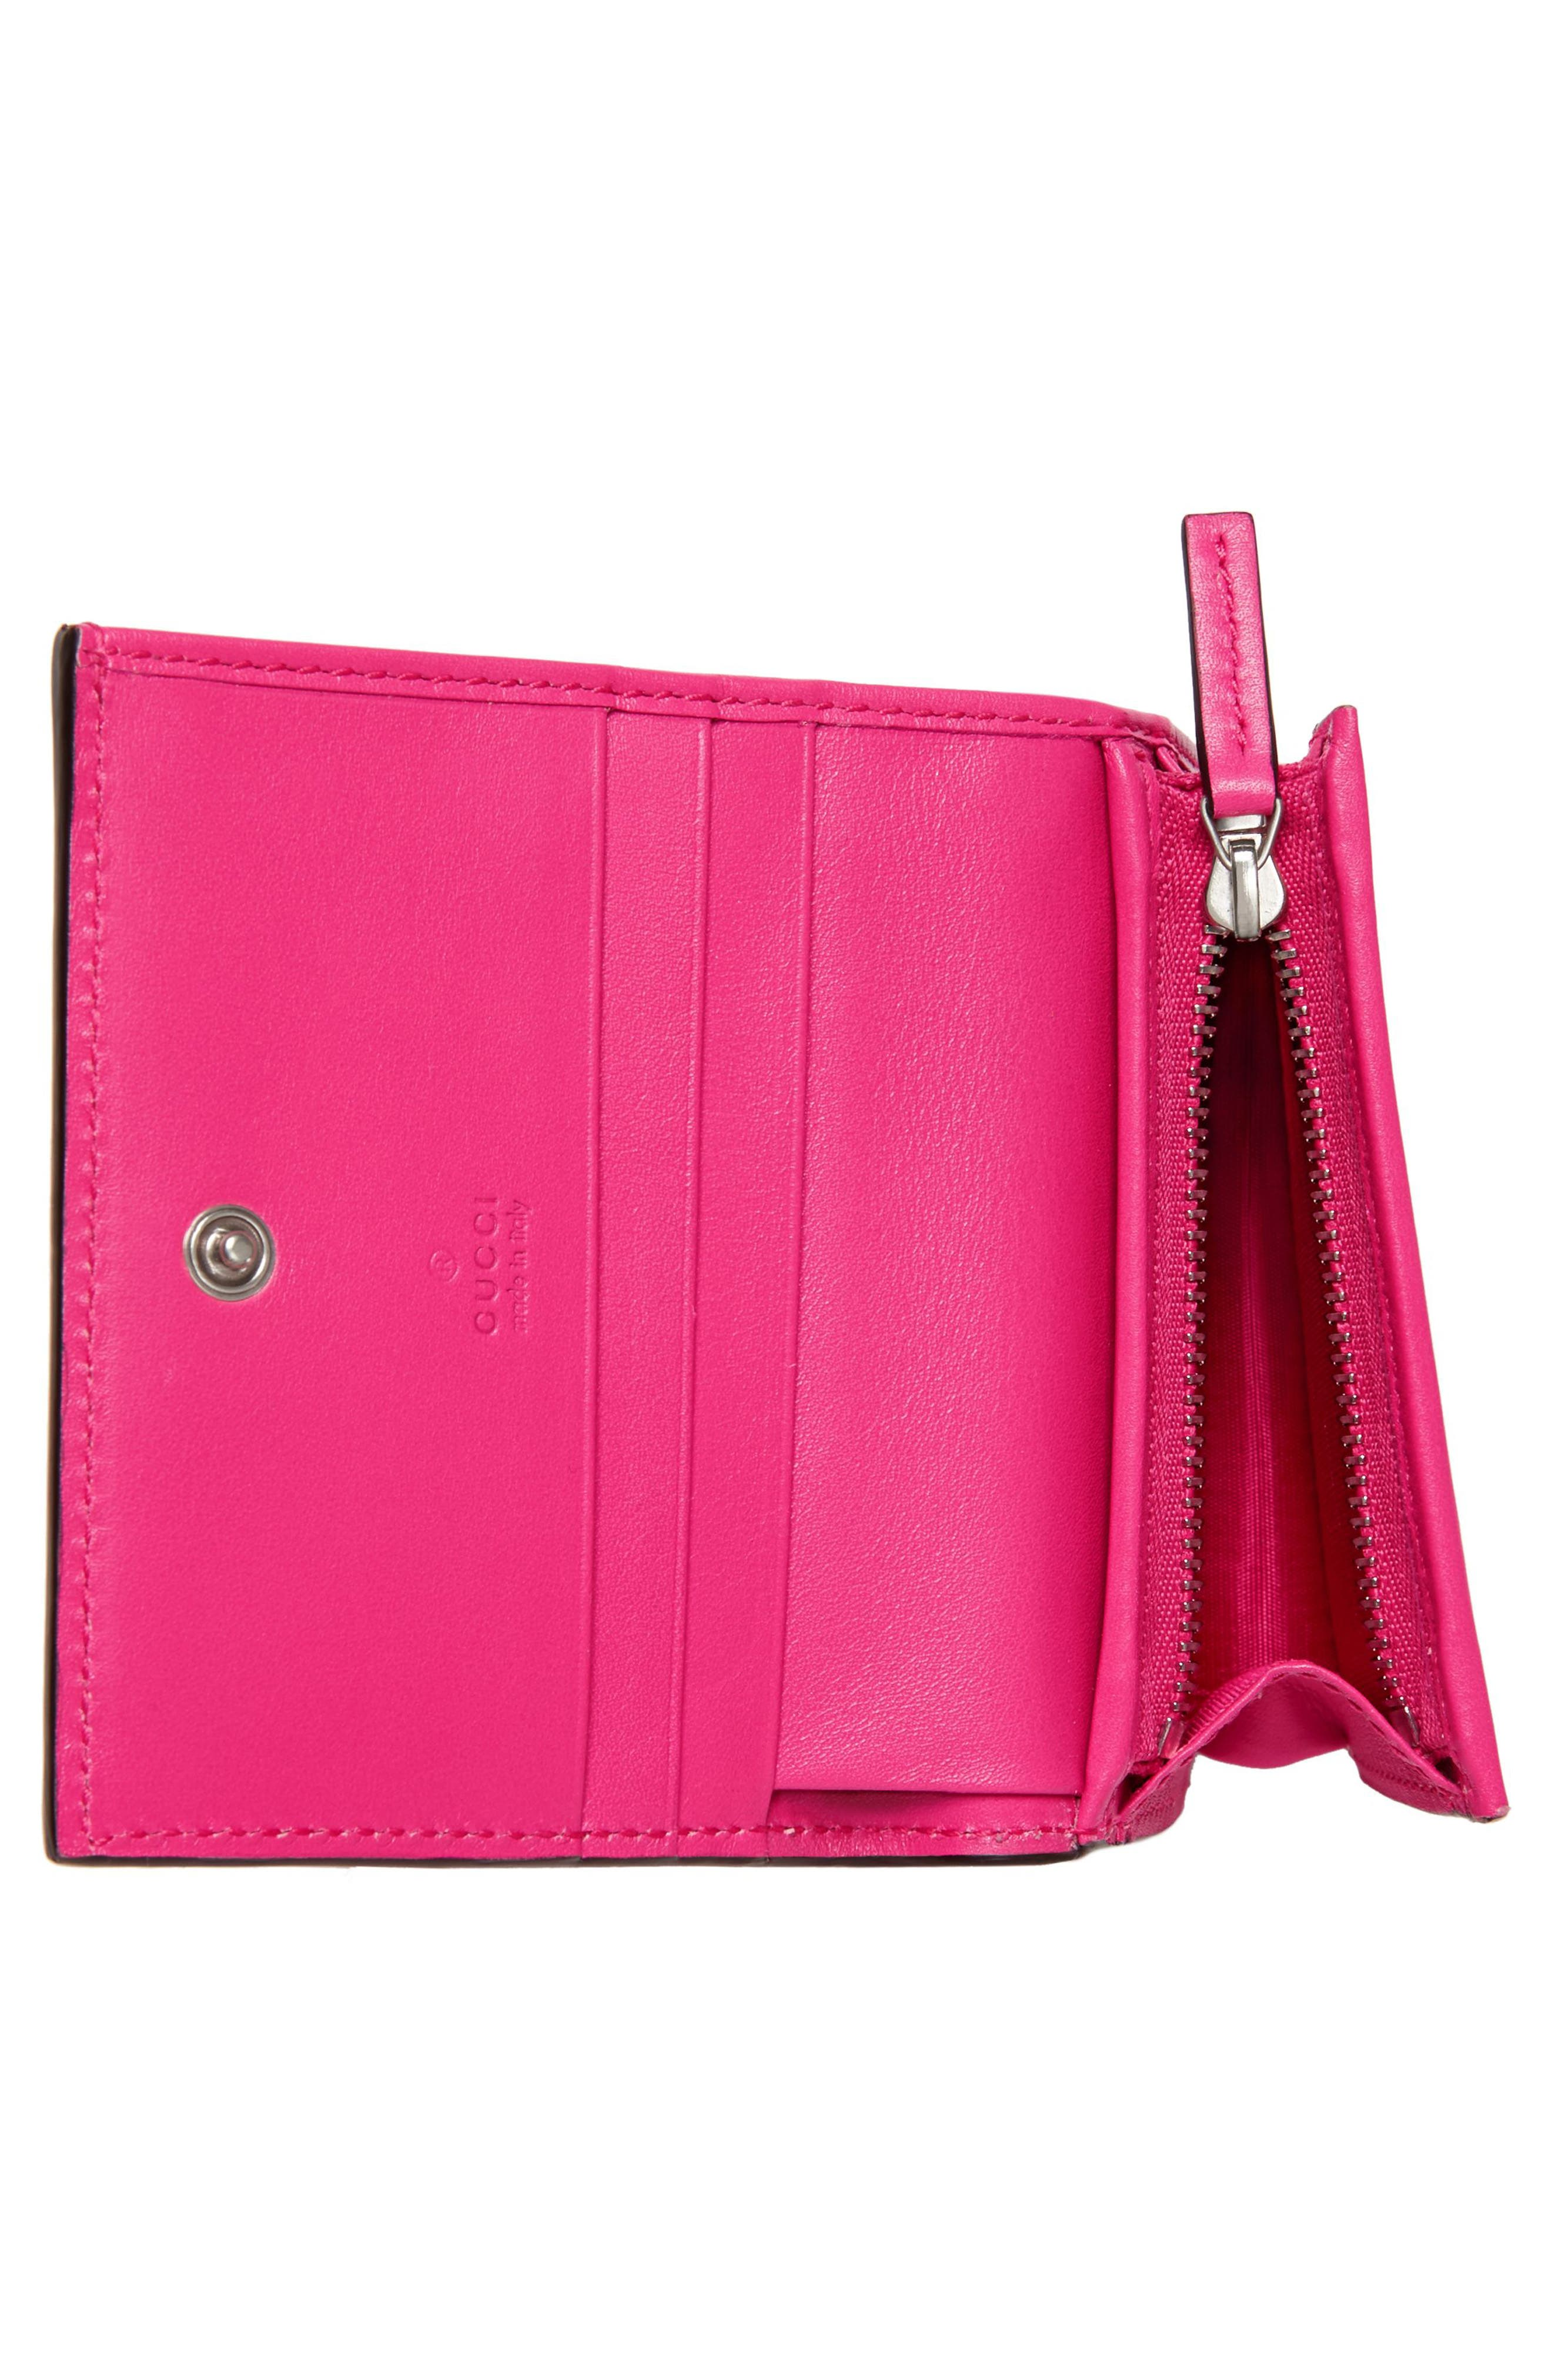 Guccy Logo Moon & Stars Leather Flap Card Case,                             Alternate thumbnail 4, color,                             BRIGHT FUCSIA ORO